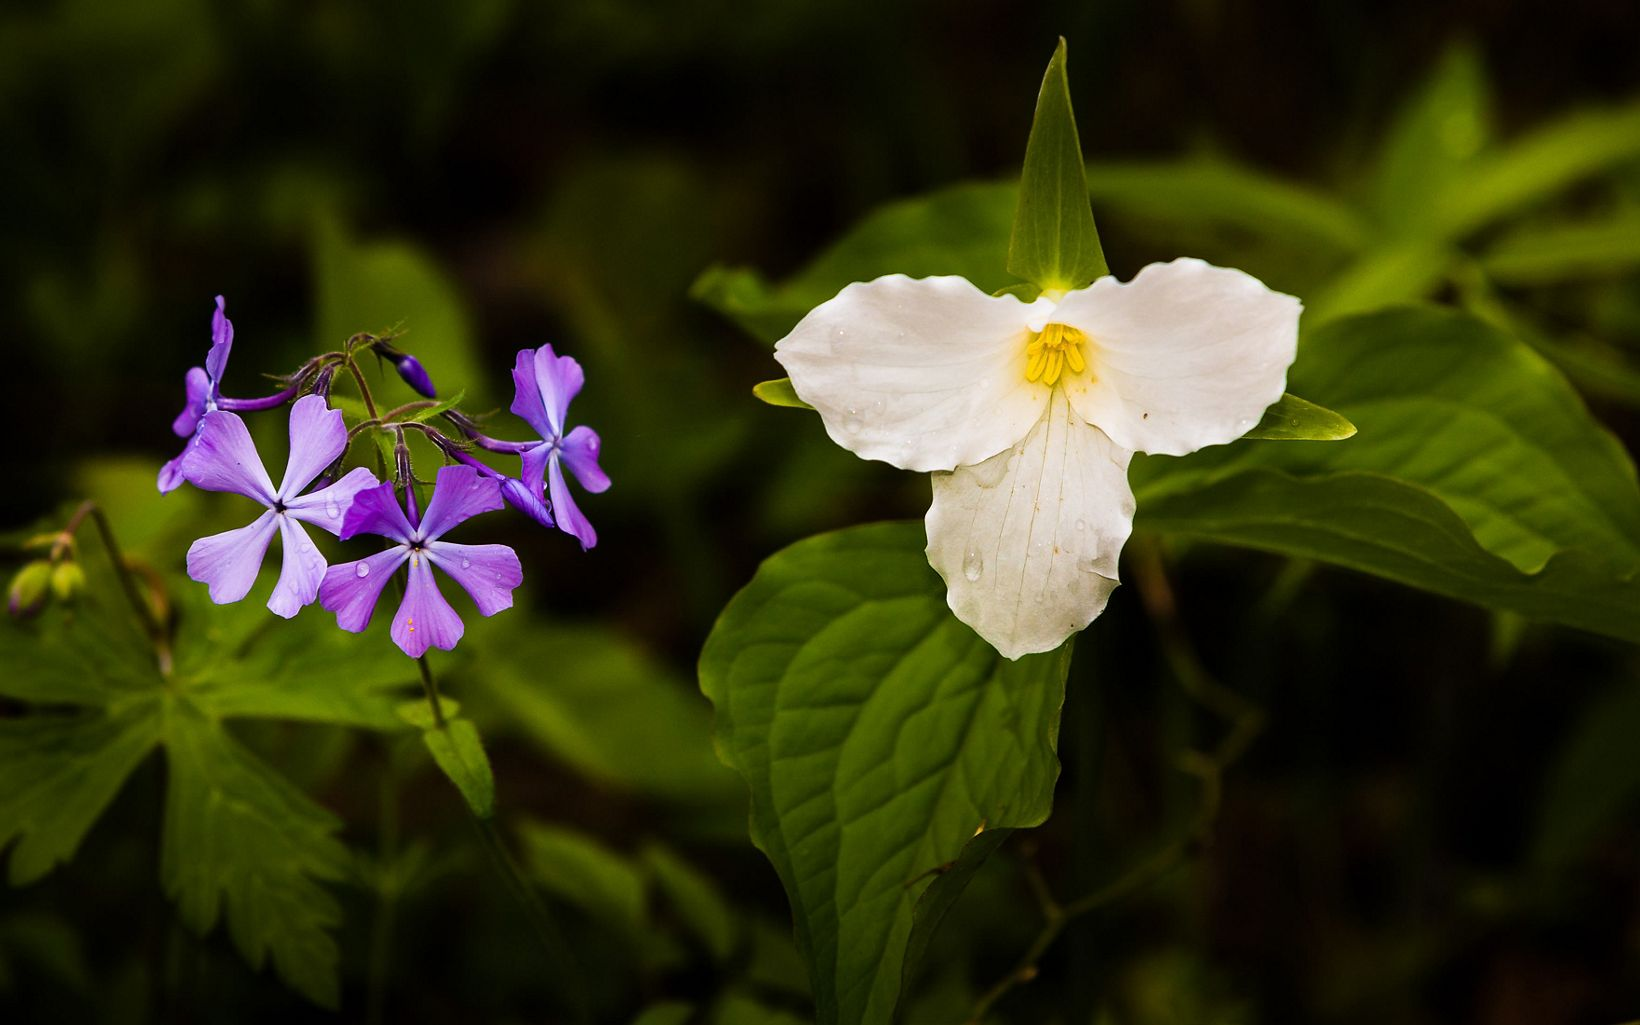 Trillium and blue phlox are just two of the flowers on display at Nan Weston Nature Preserve in the spring.